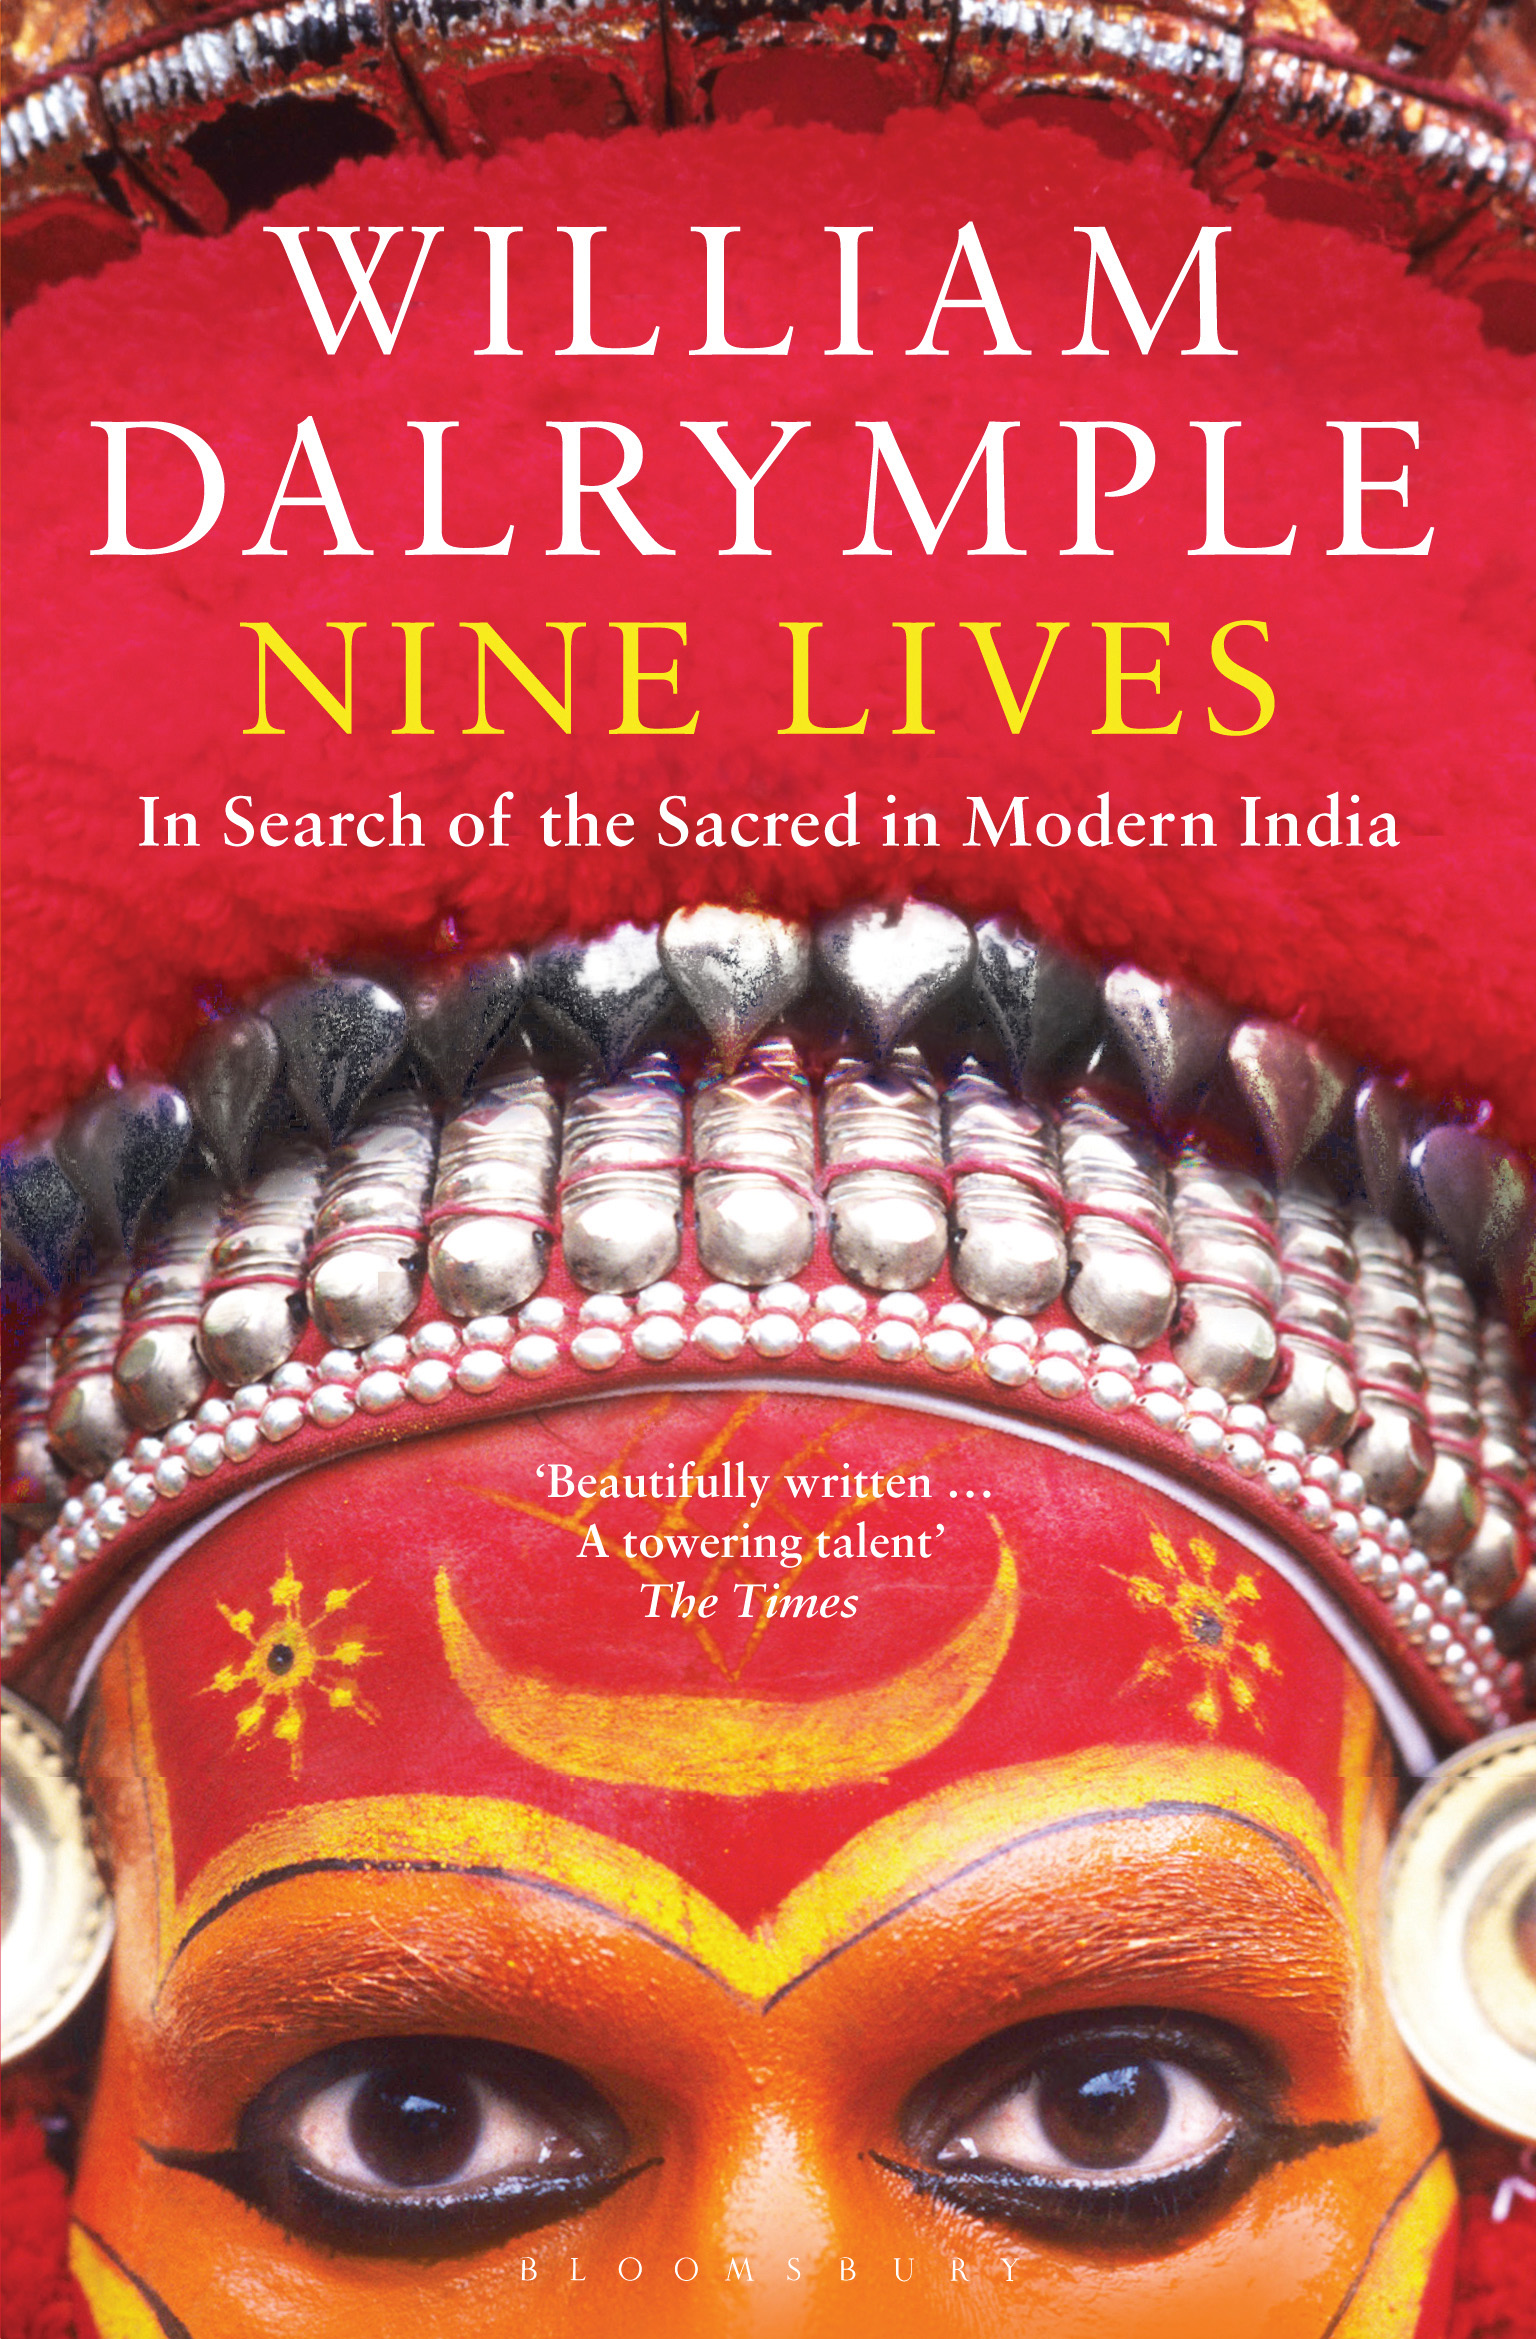 Nine Lives: In Search of the Sacred in Modern India In Search of the Sacred in Modern India